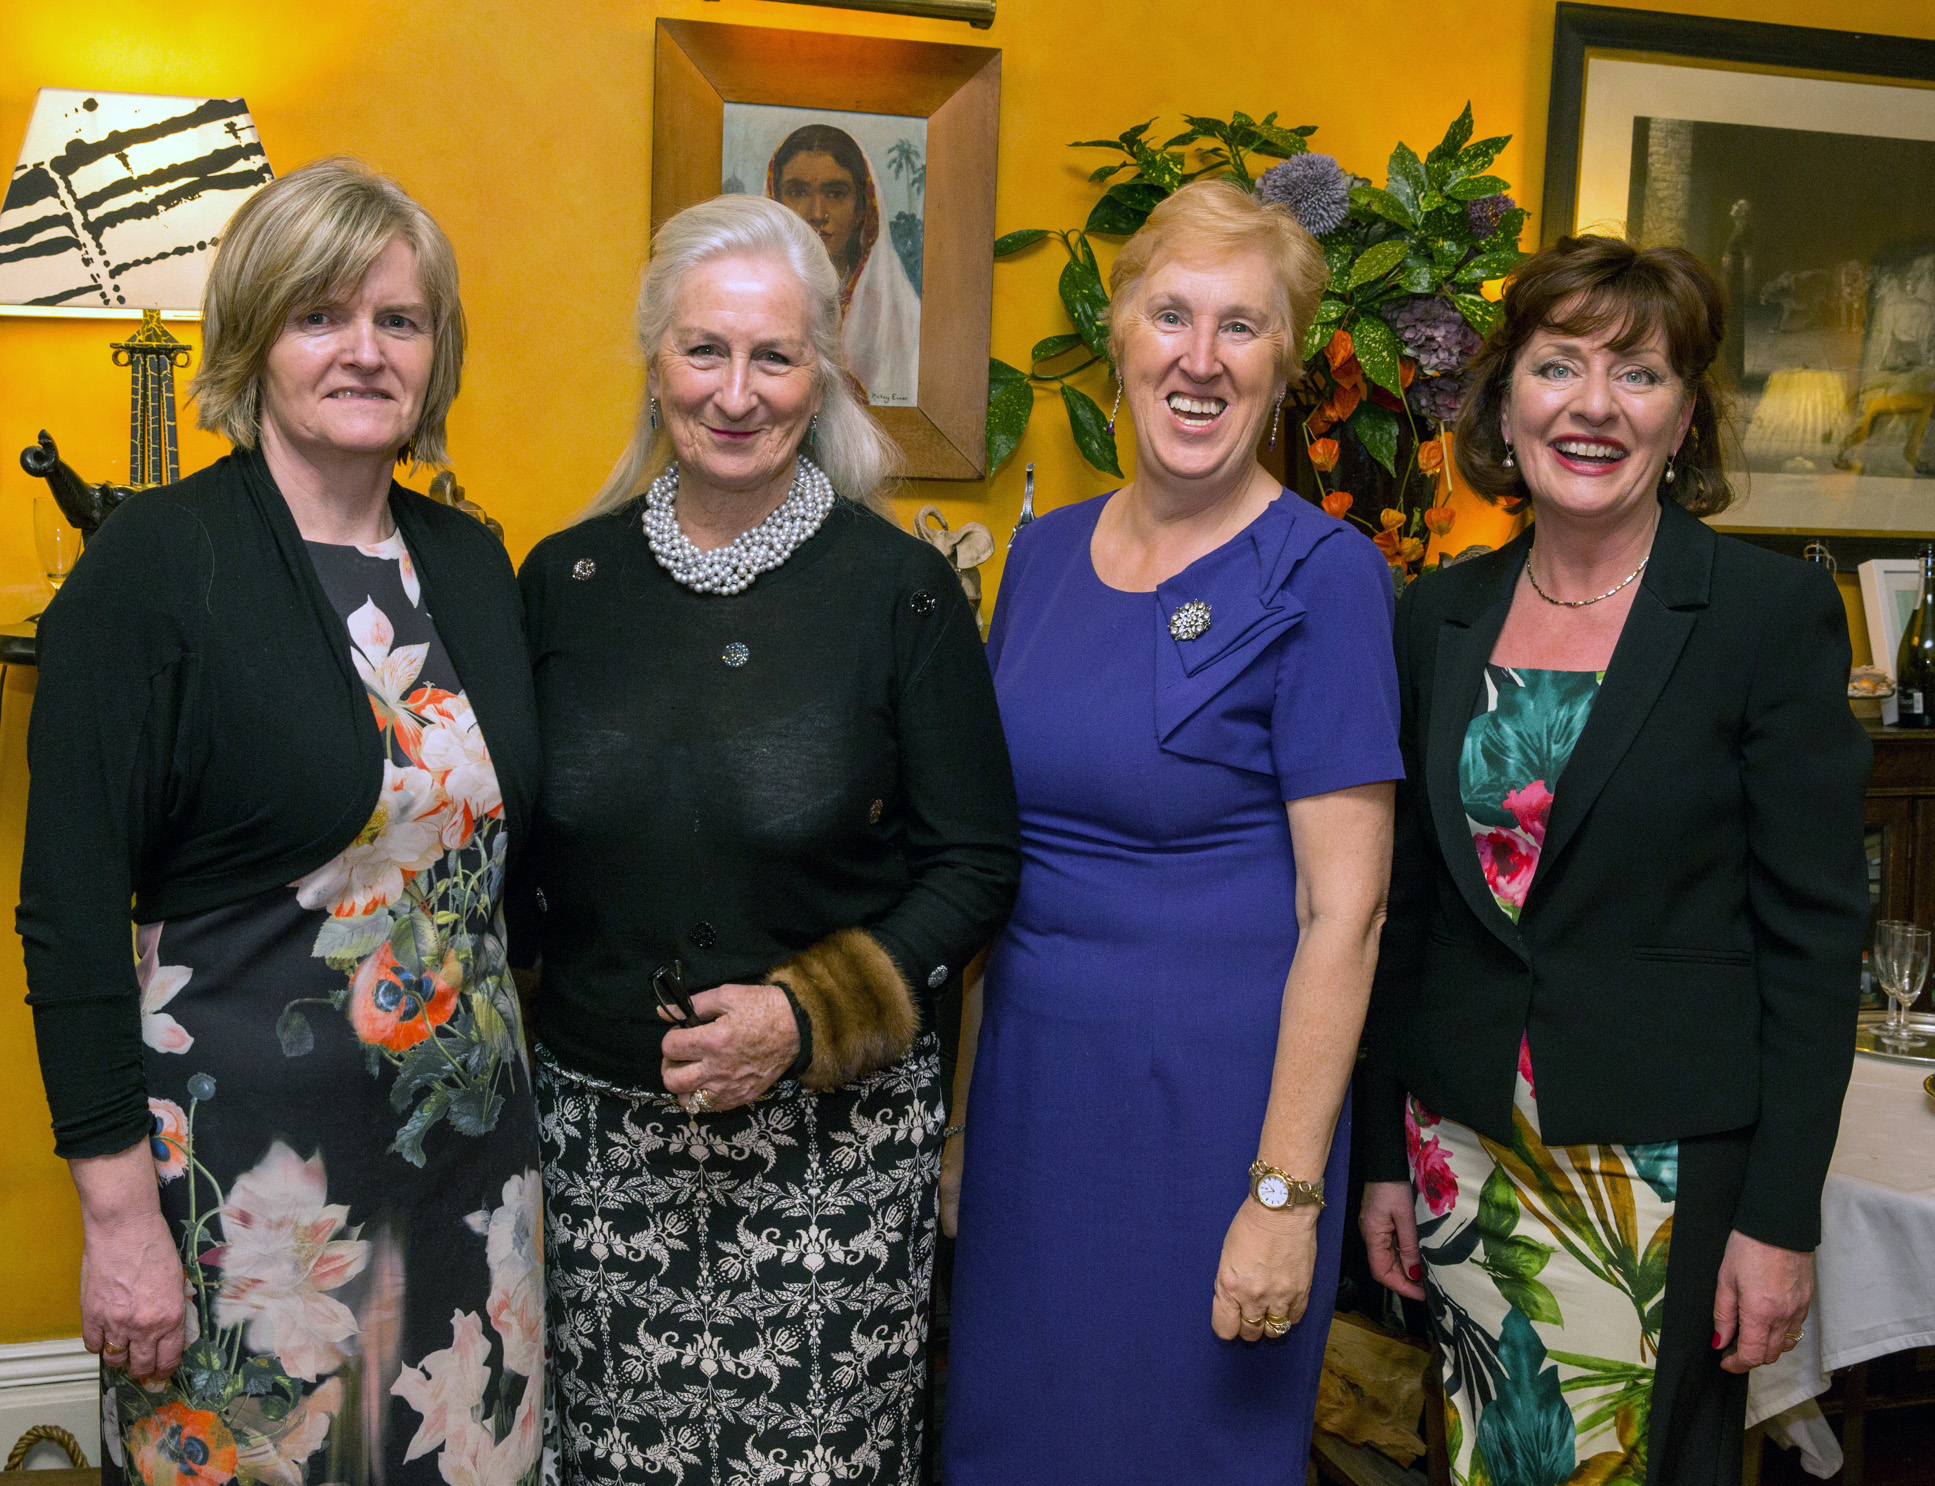 Adare Heritage Centre's 21st Anniversary at The Mustard Seed